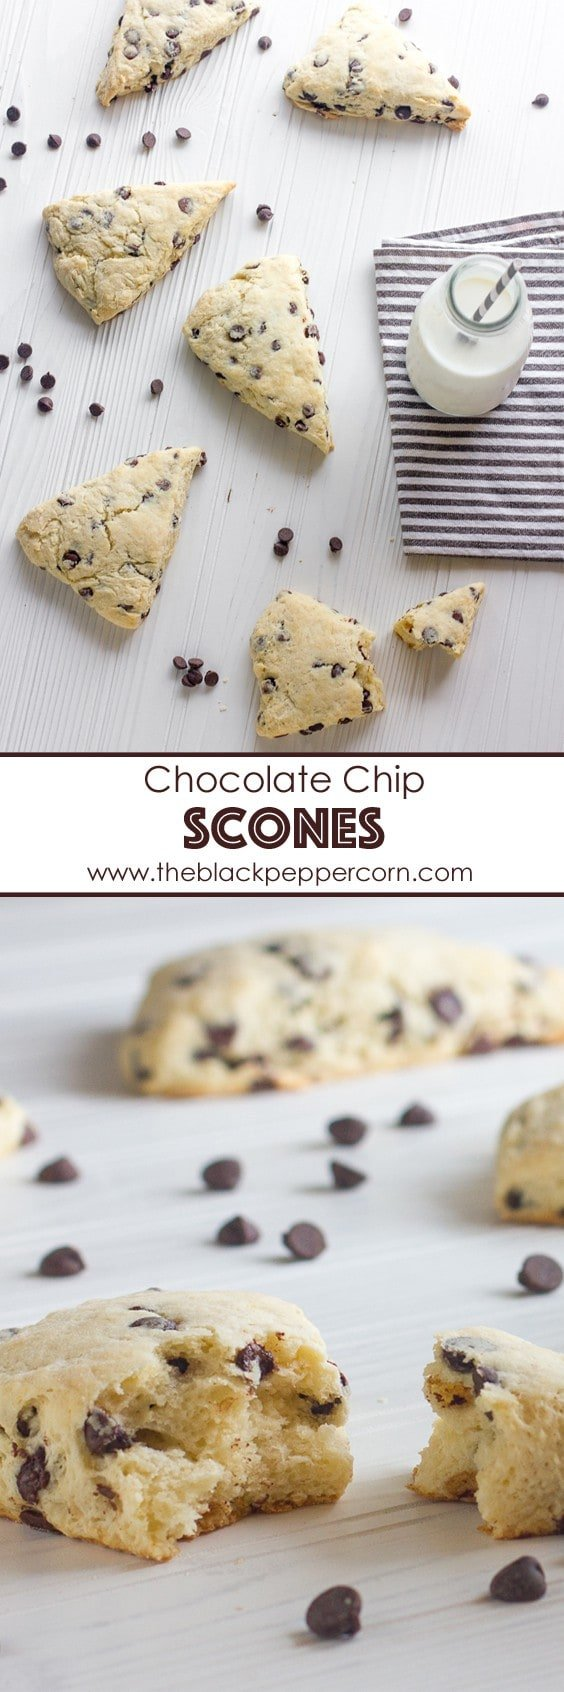 chocolate chip scones pinterest